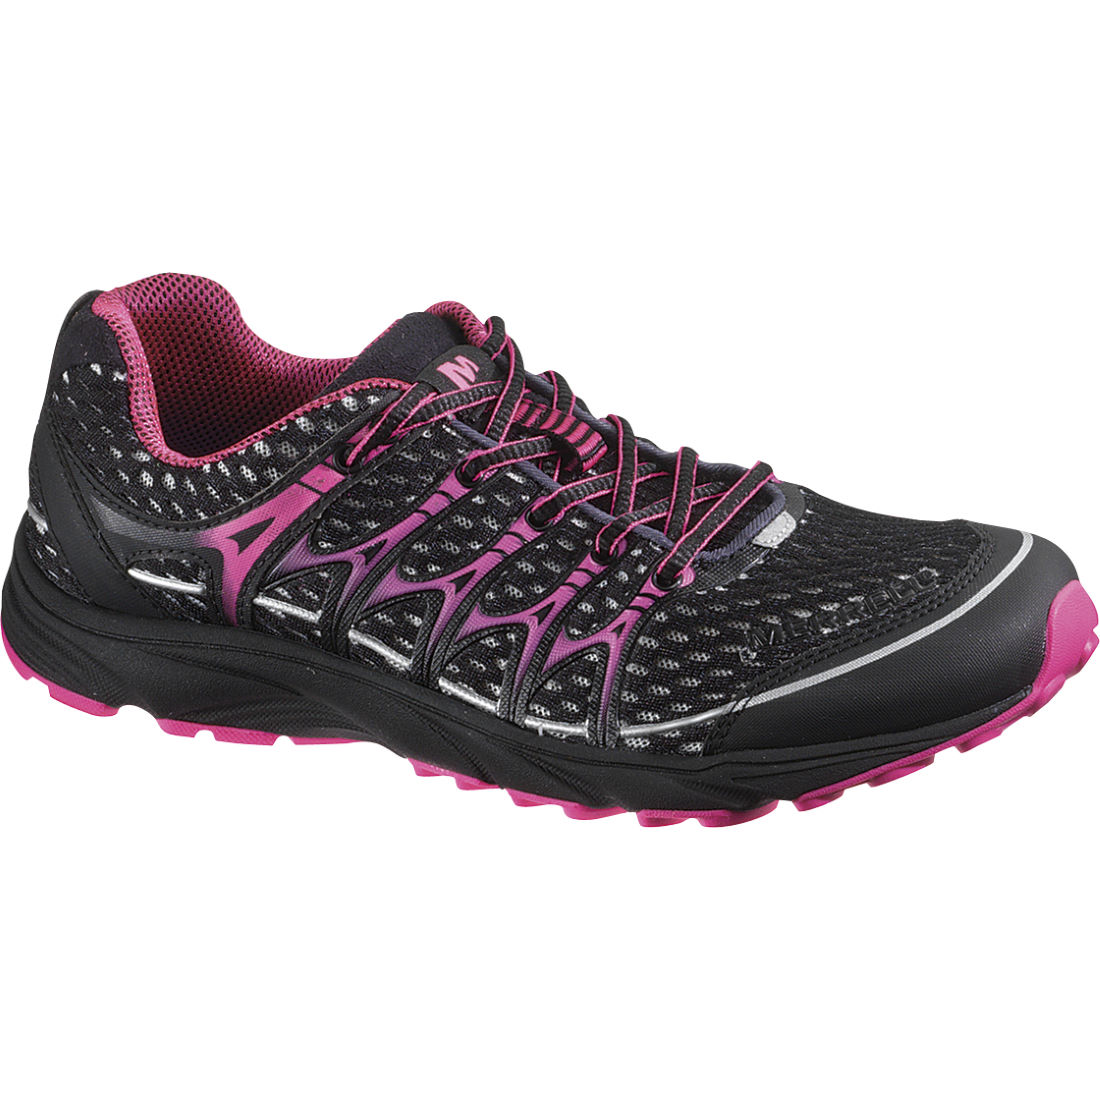 Merrell Mix Master Move Glide Trail Running Shoes